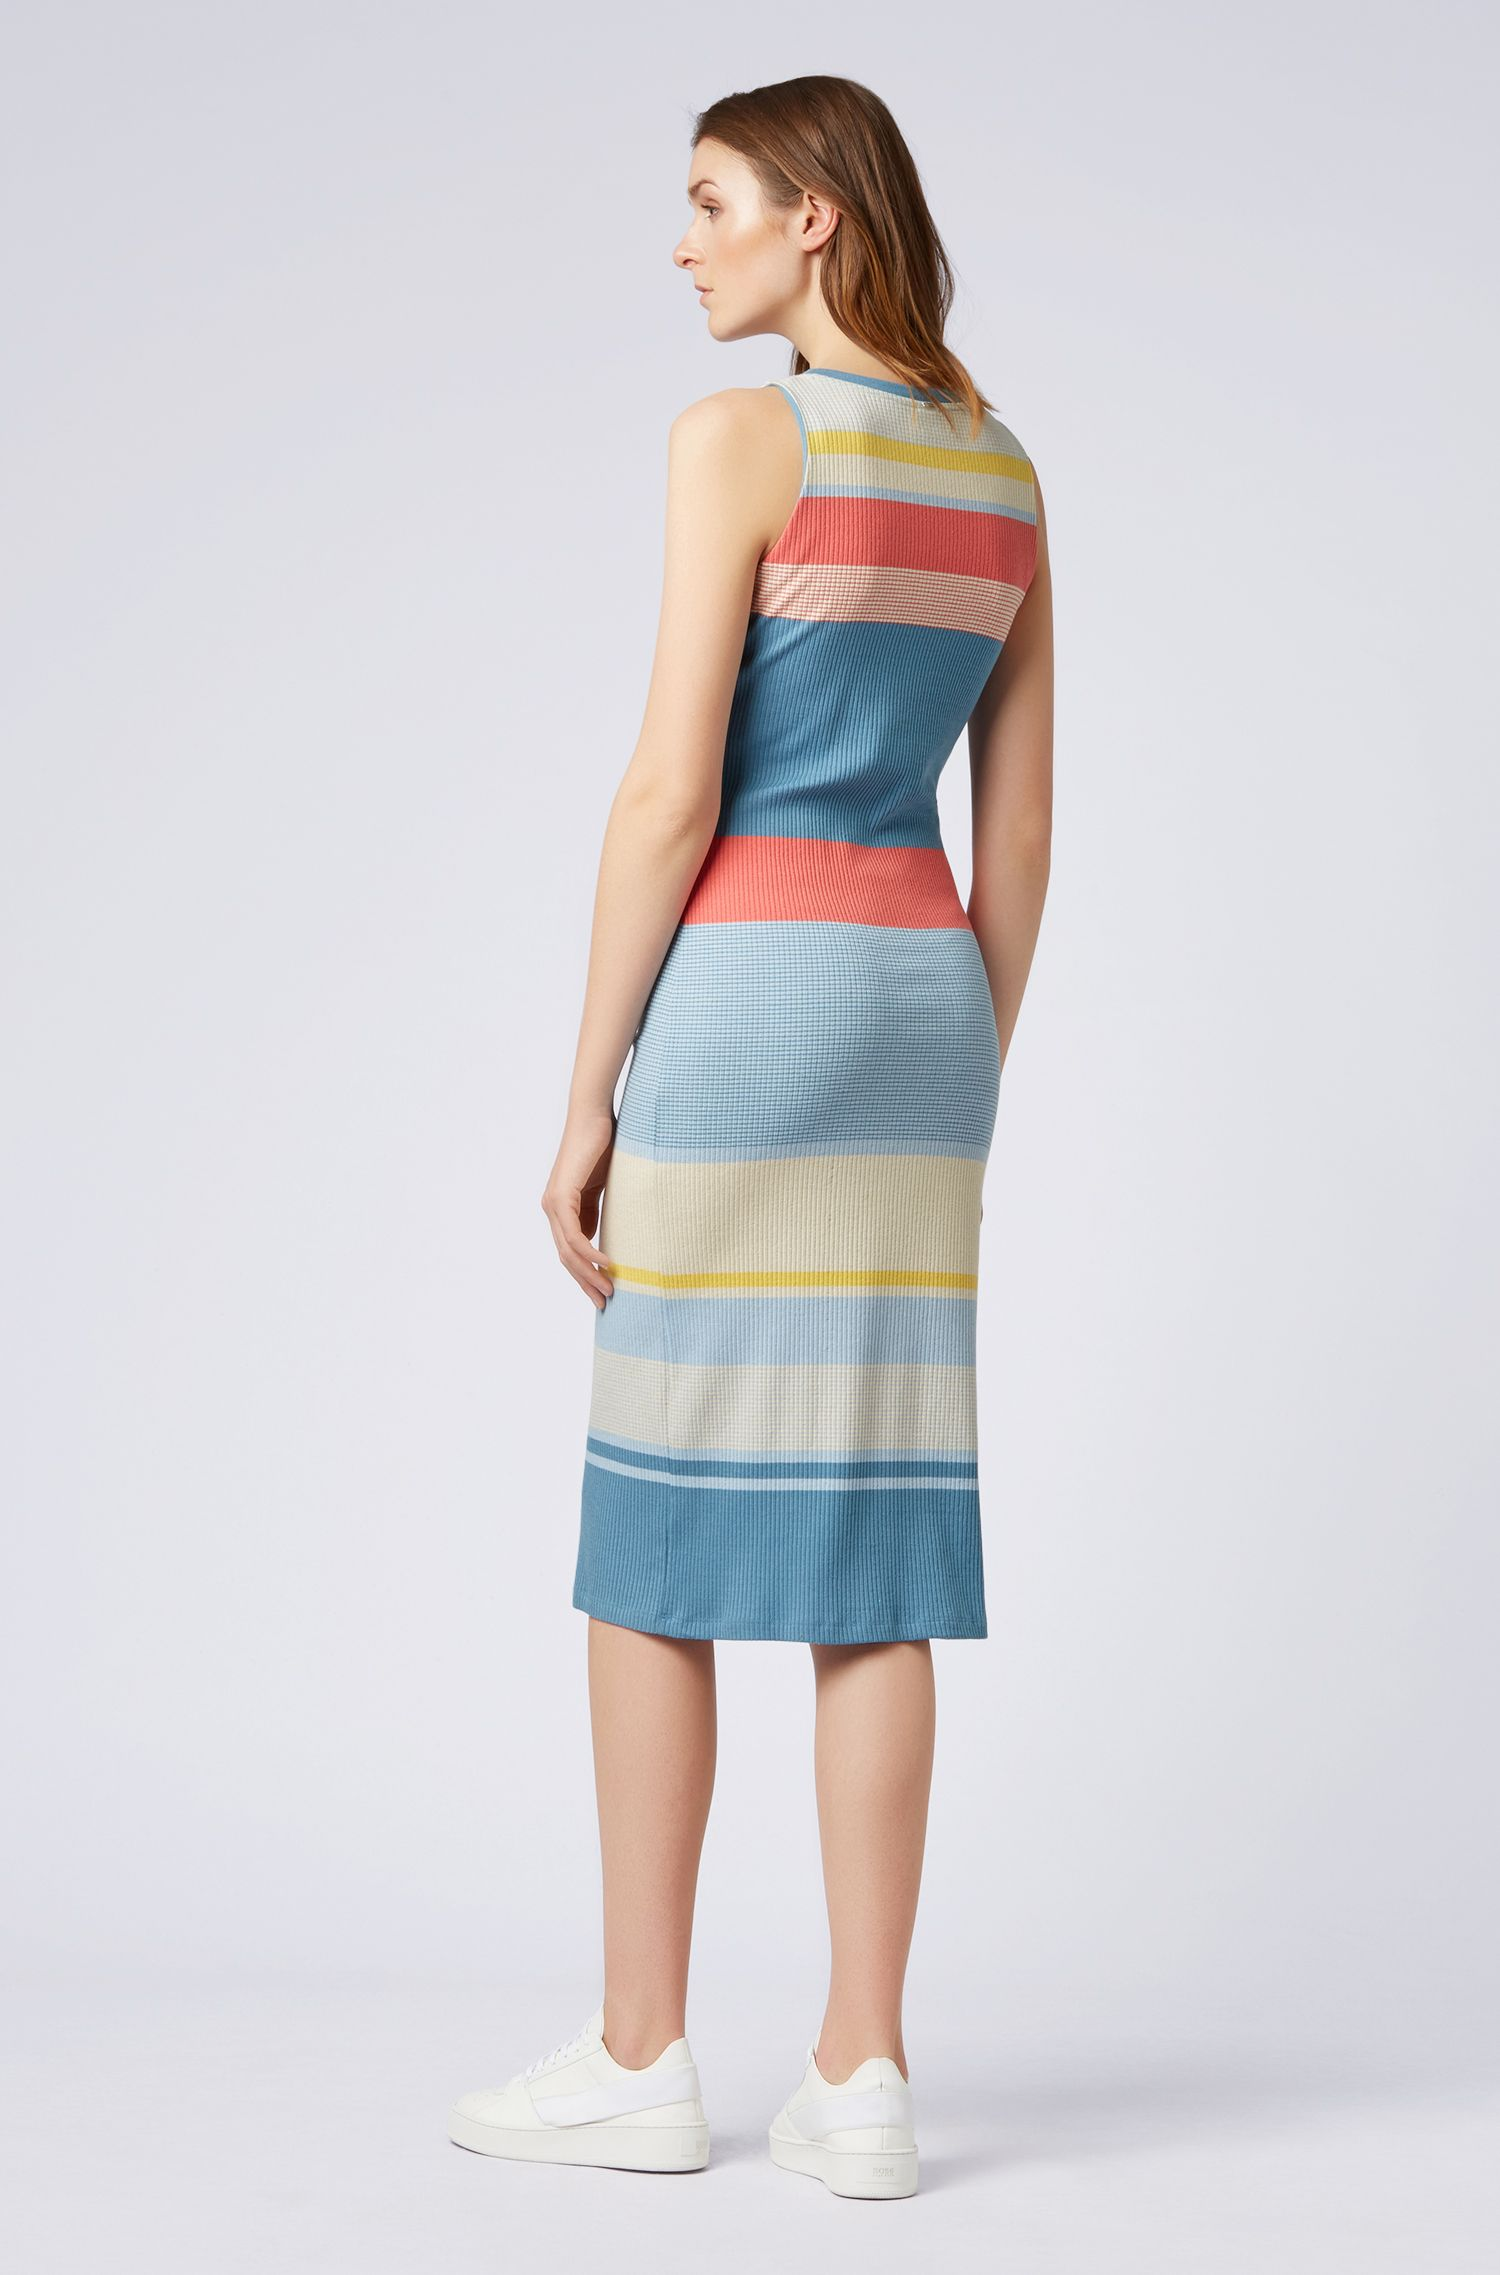 Slim-fit bodycon dress with irregular stripes, Patterned